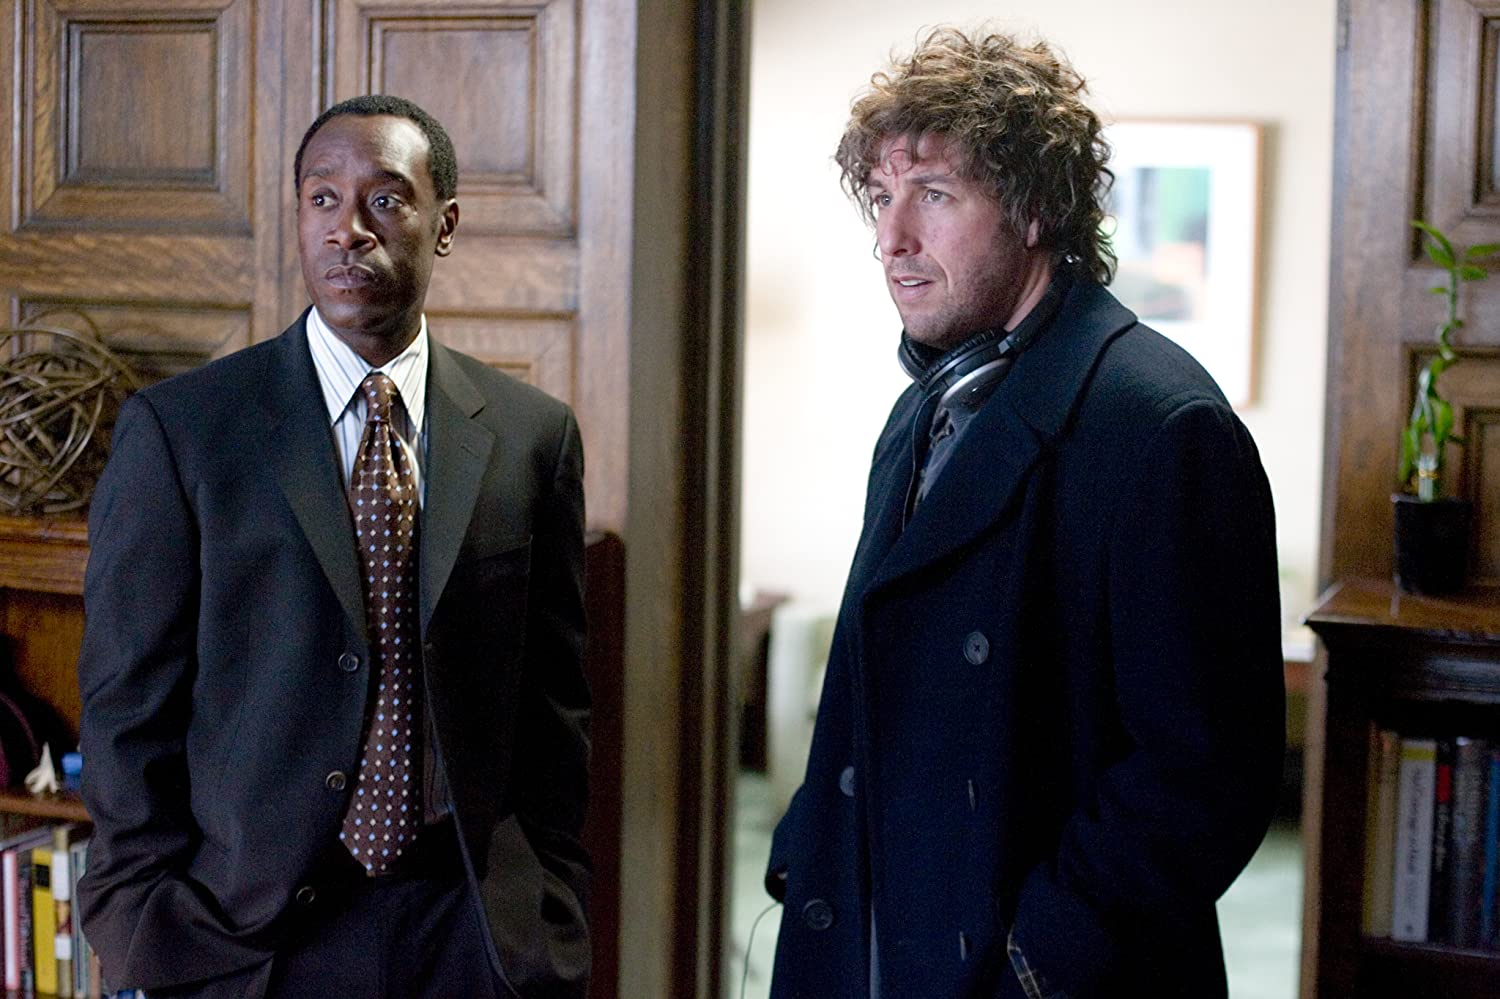 Don Cheadle and Adam Sandler in Reign Over Me (2007)